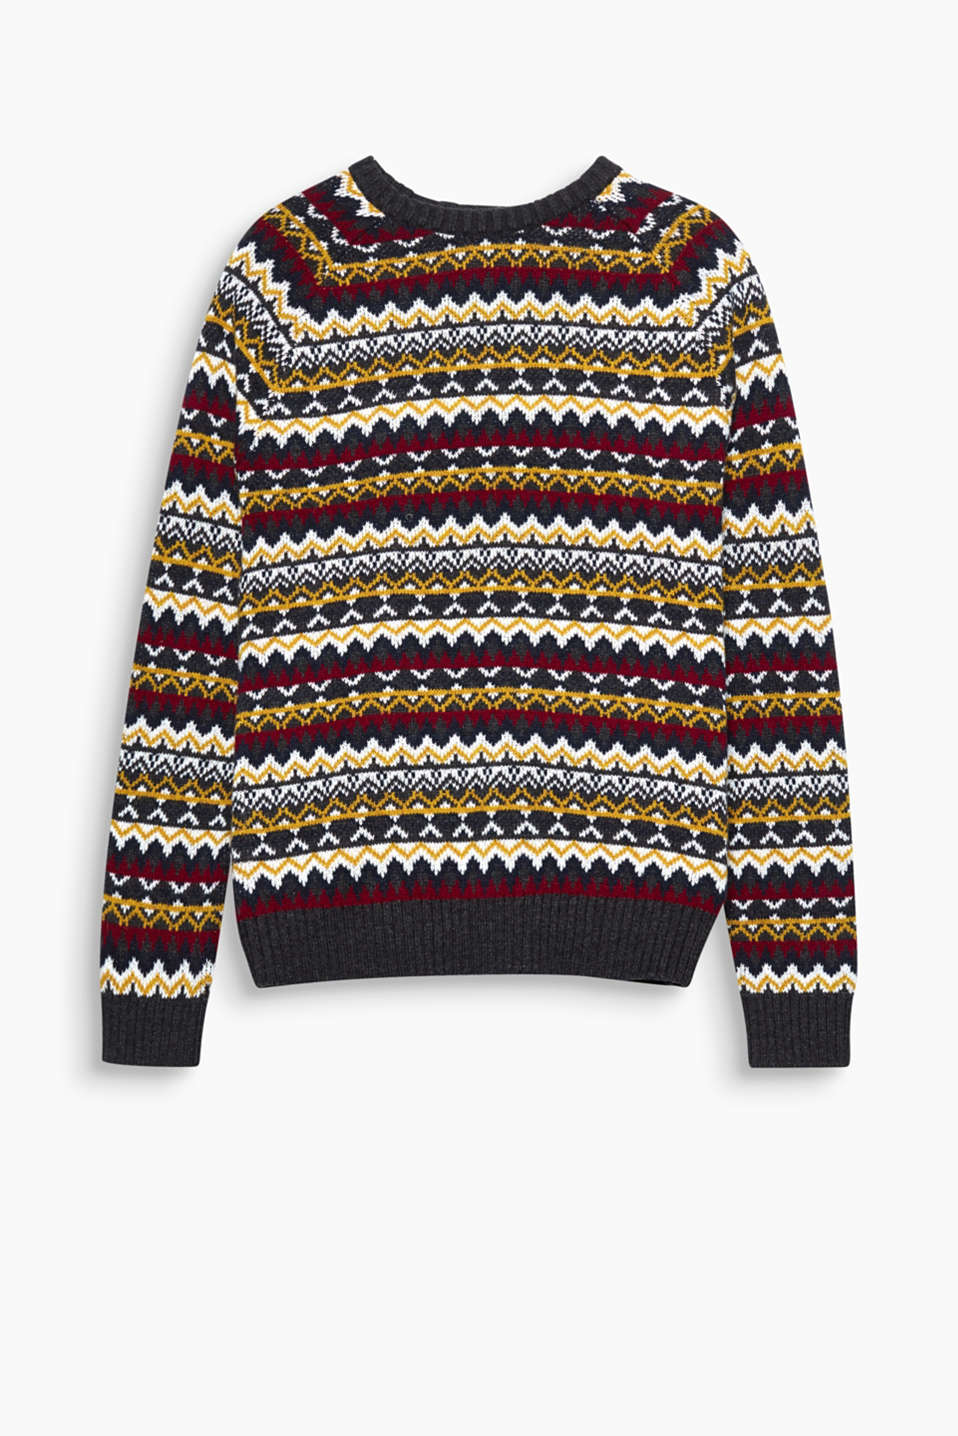 A striking pattern makes this blended cotton jumper a stylish head-turner!